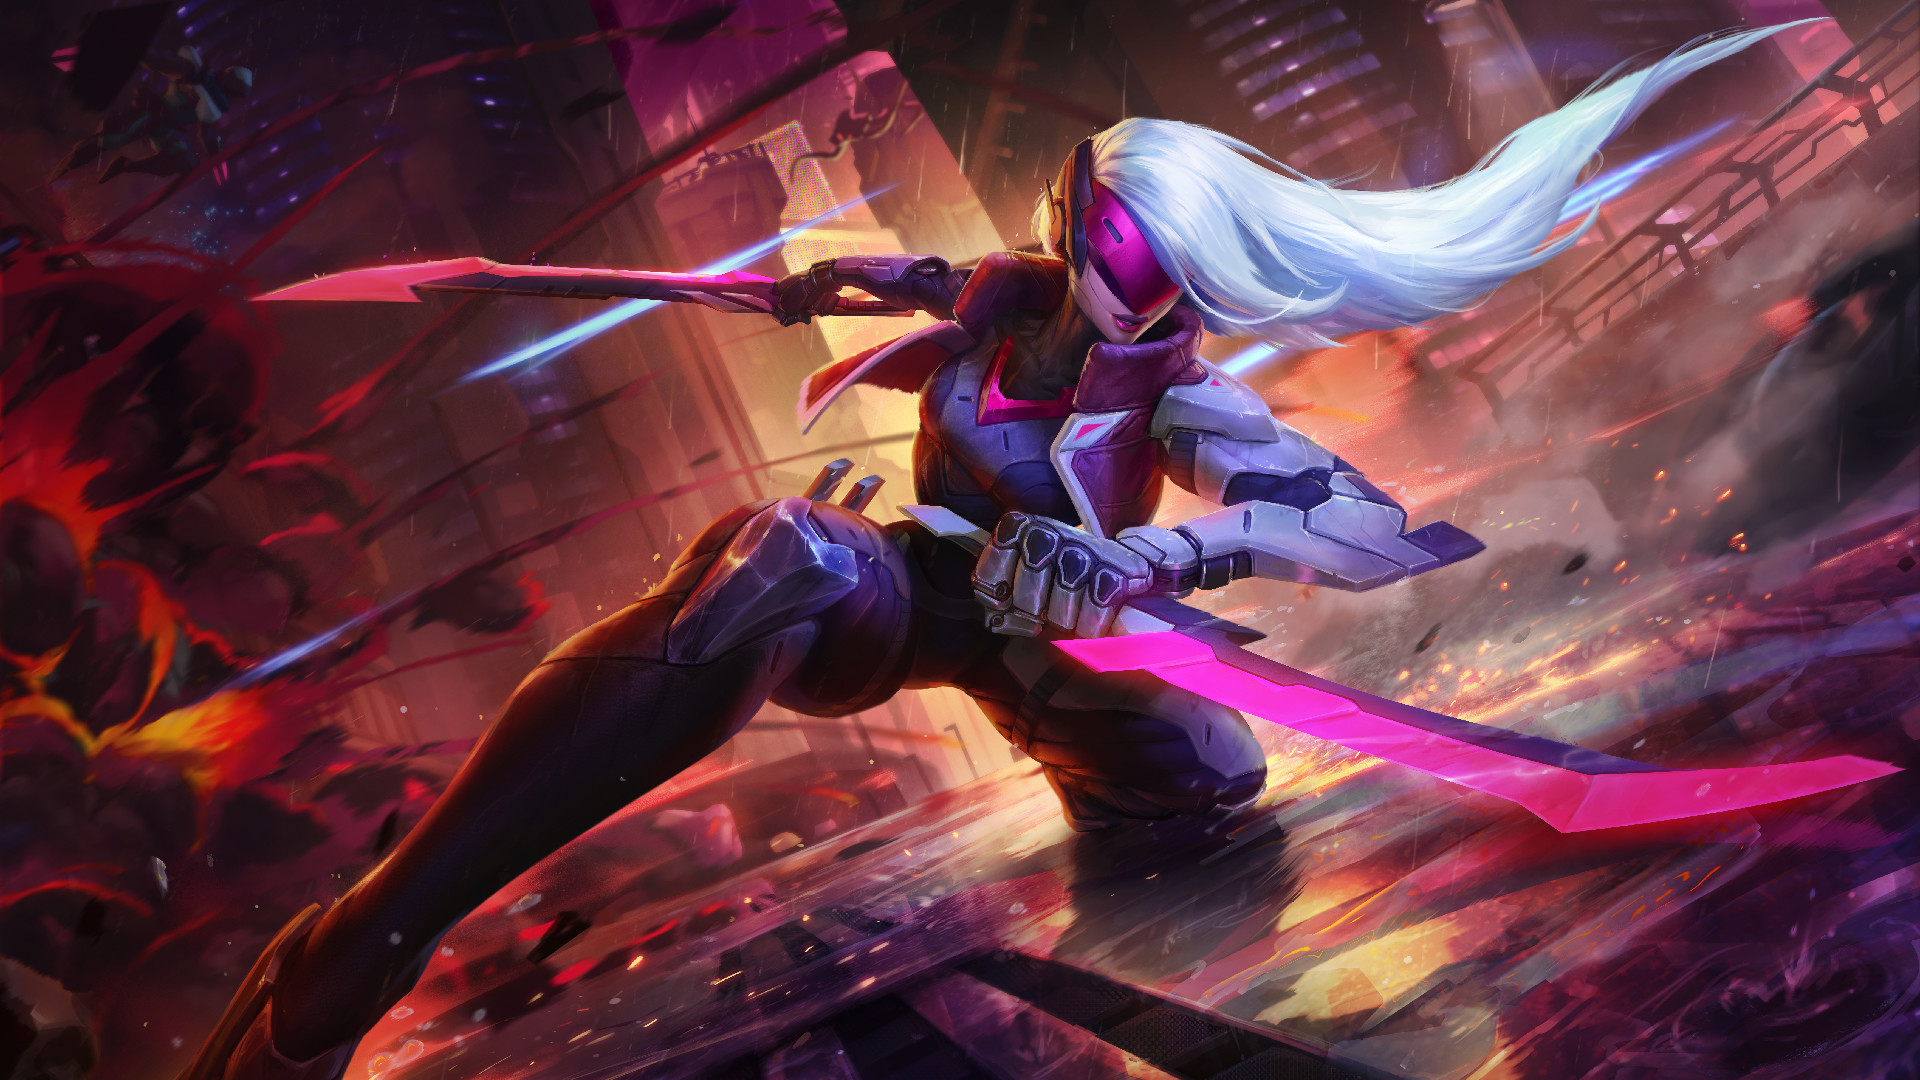 1920x1080 Project Katarina League of Legends